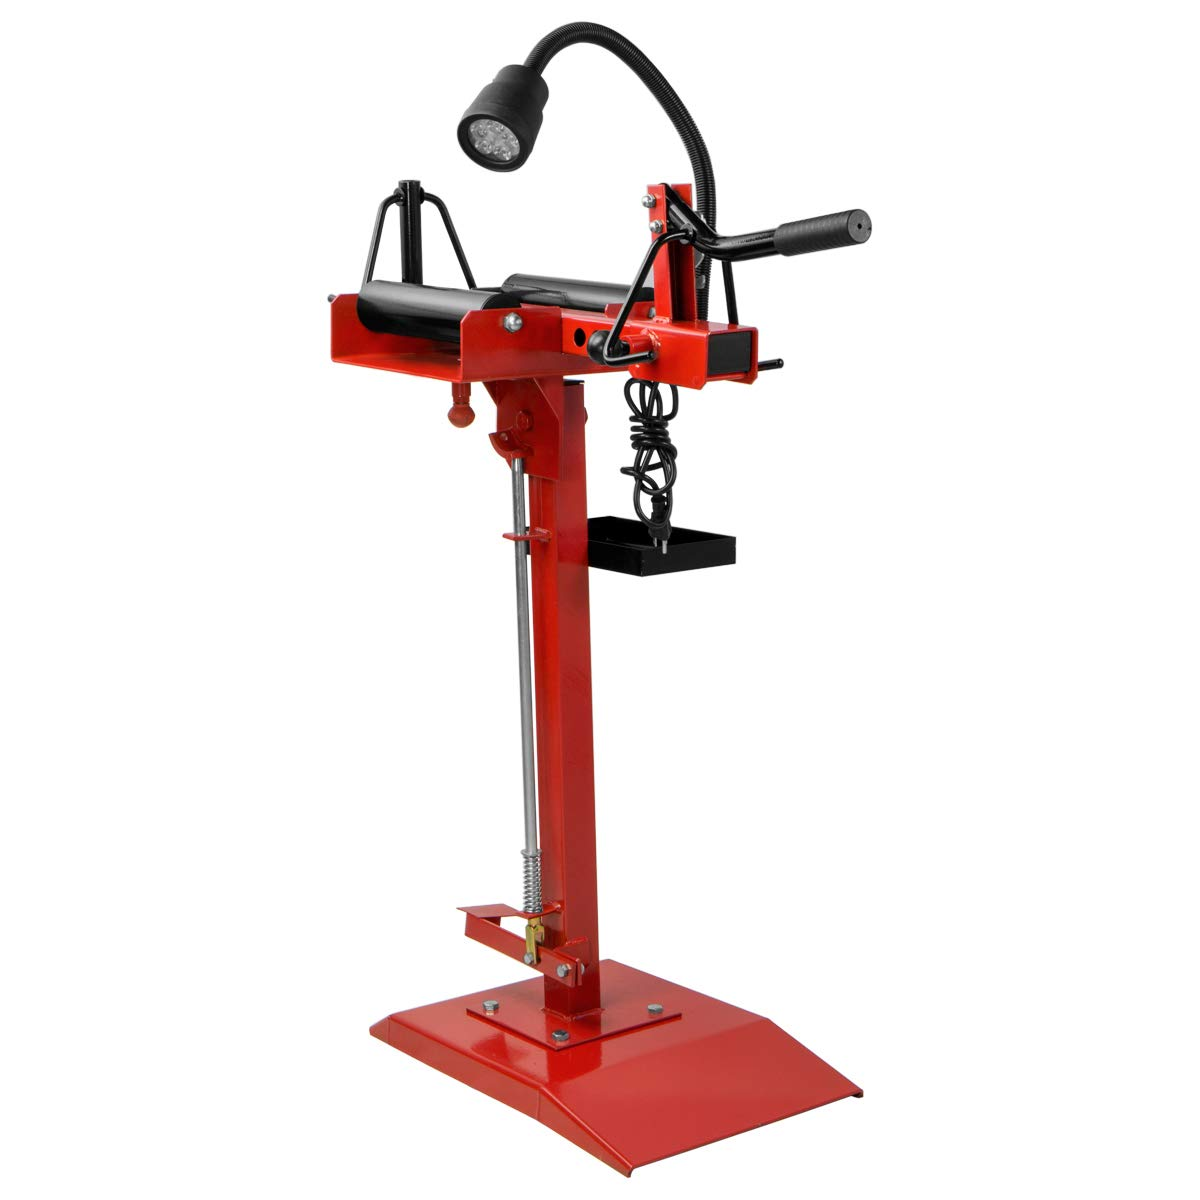 XtremepowerUS Manual Tire Spreader Portable Tire Changer Stand Adjustable LED Light Tire Spreader Tool for Light Truck Car by XtremepowerUS